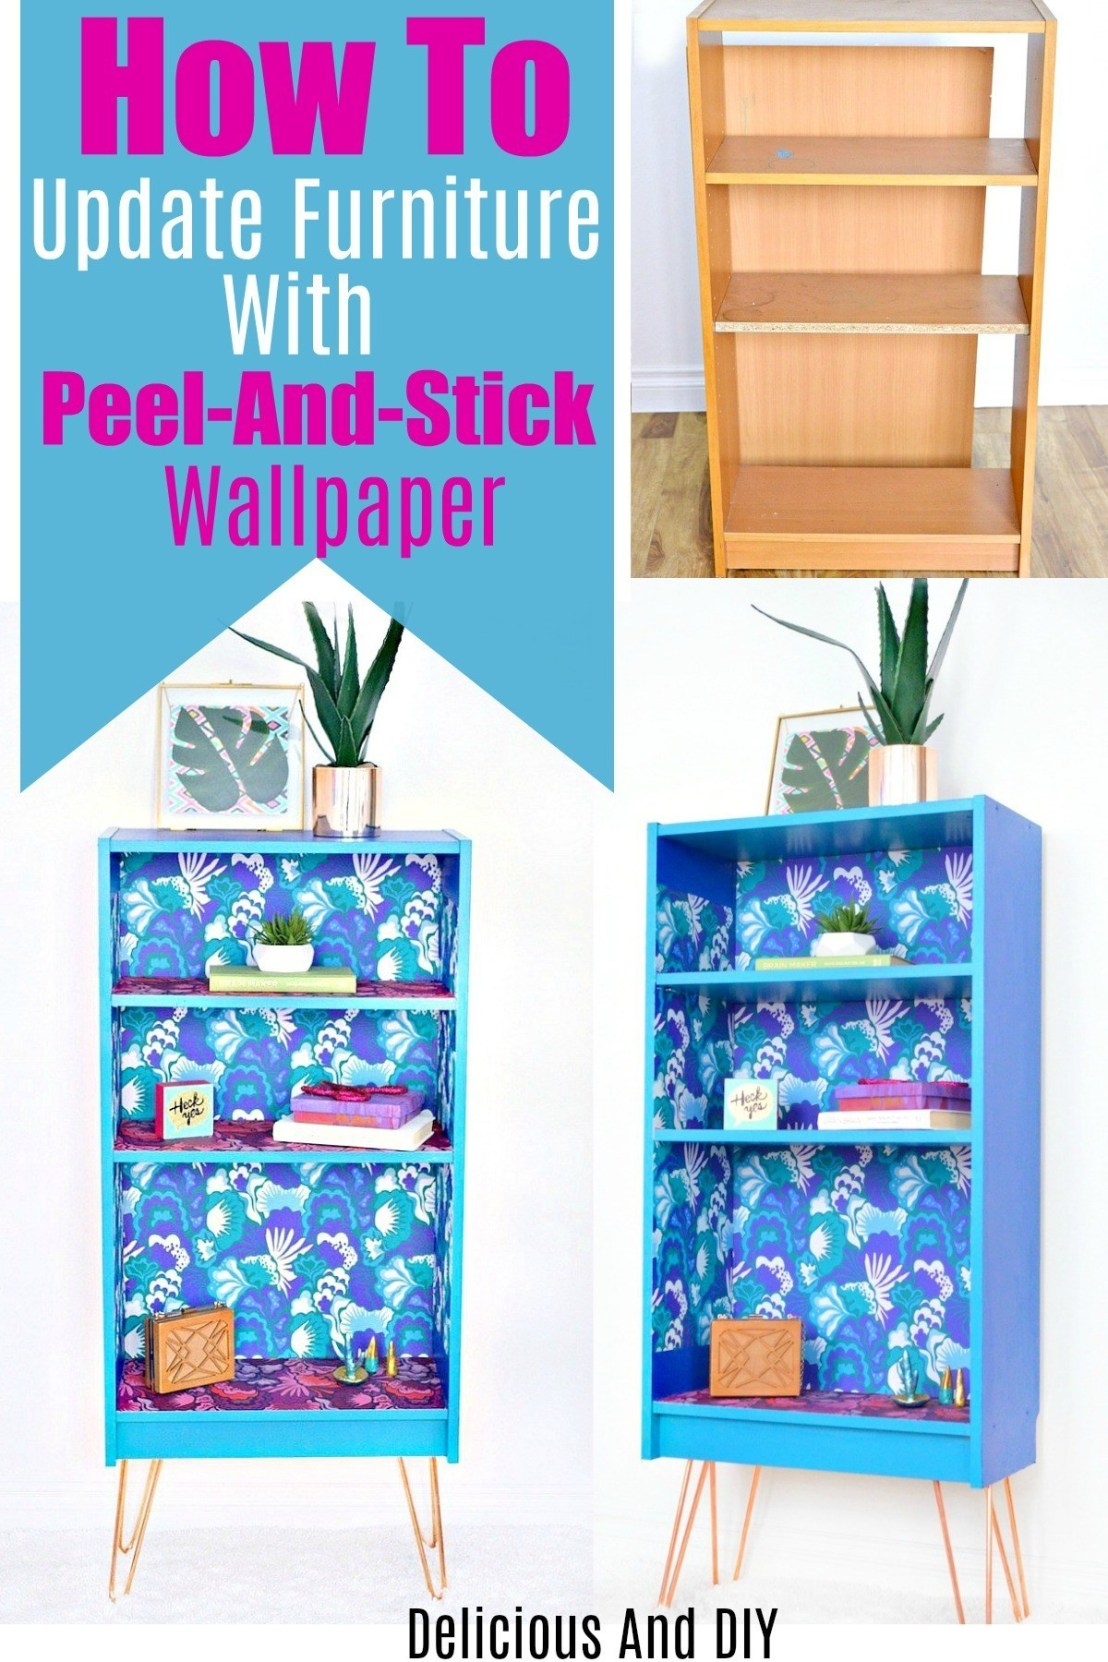 How-To-Update-Furniture-With-Peel-And-Stick-Wallpaper51